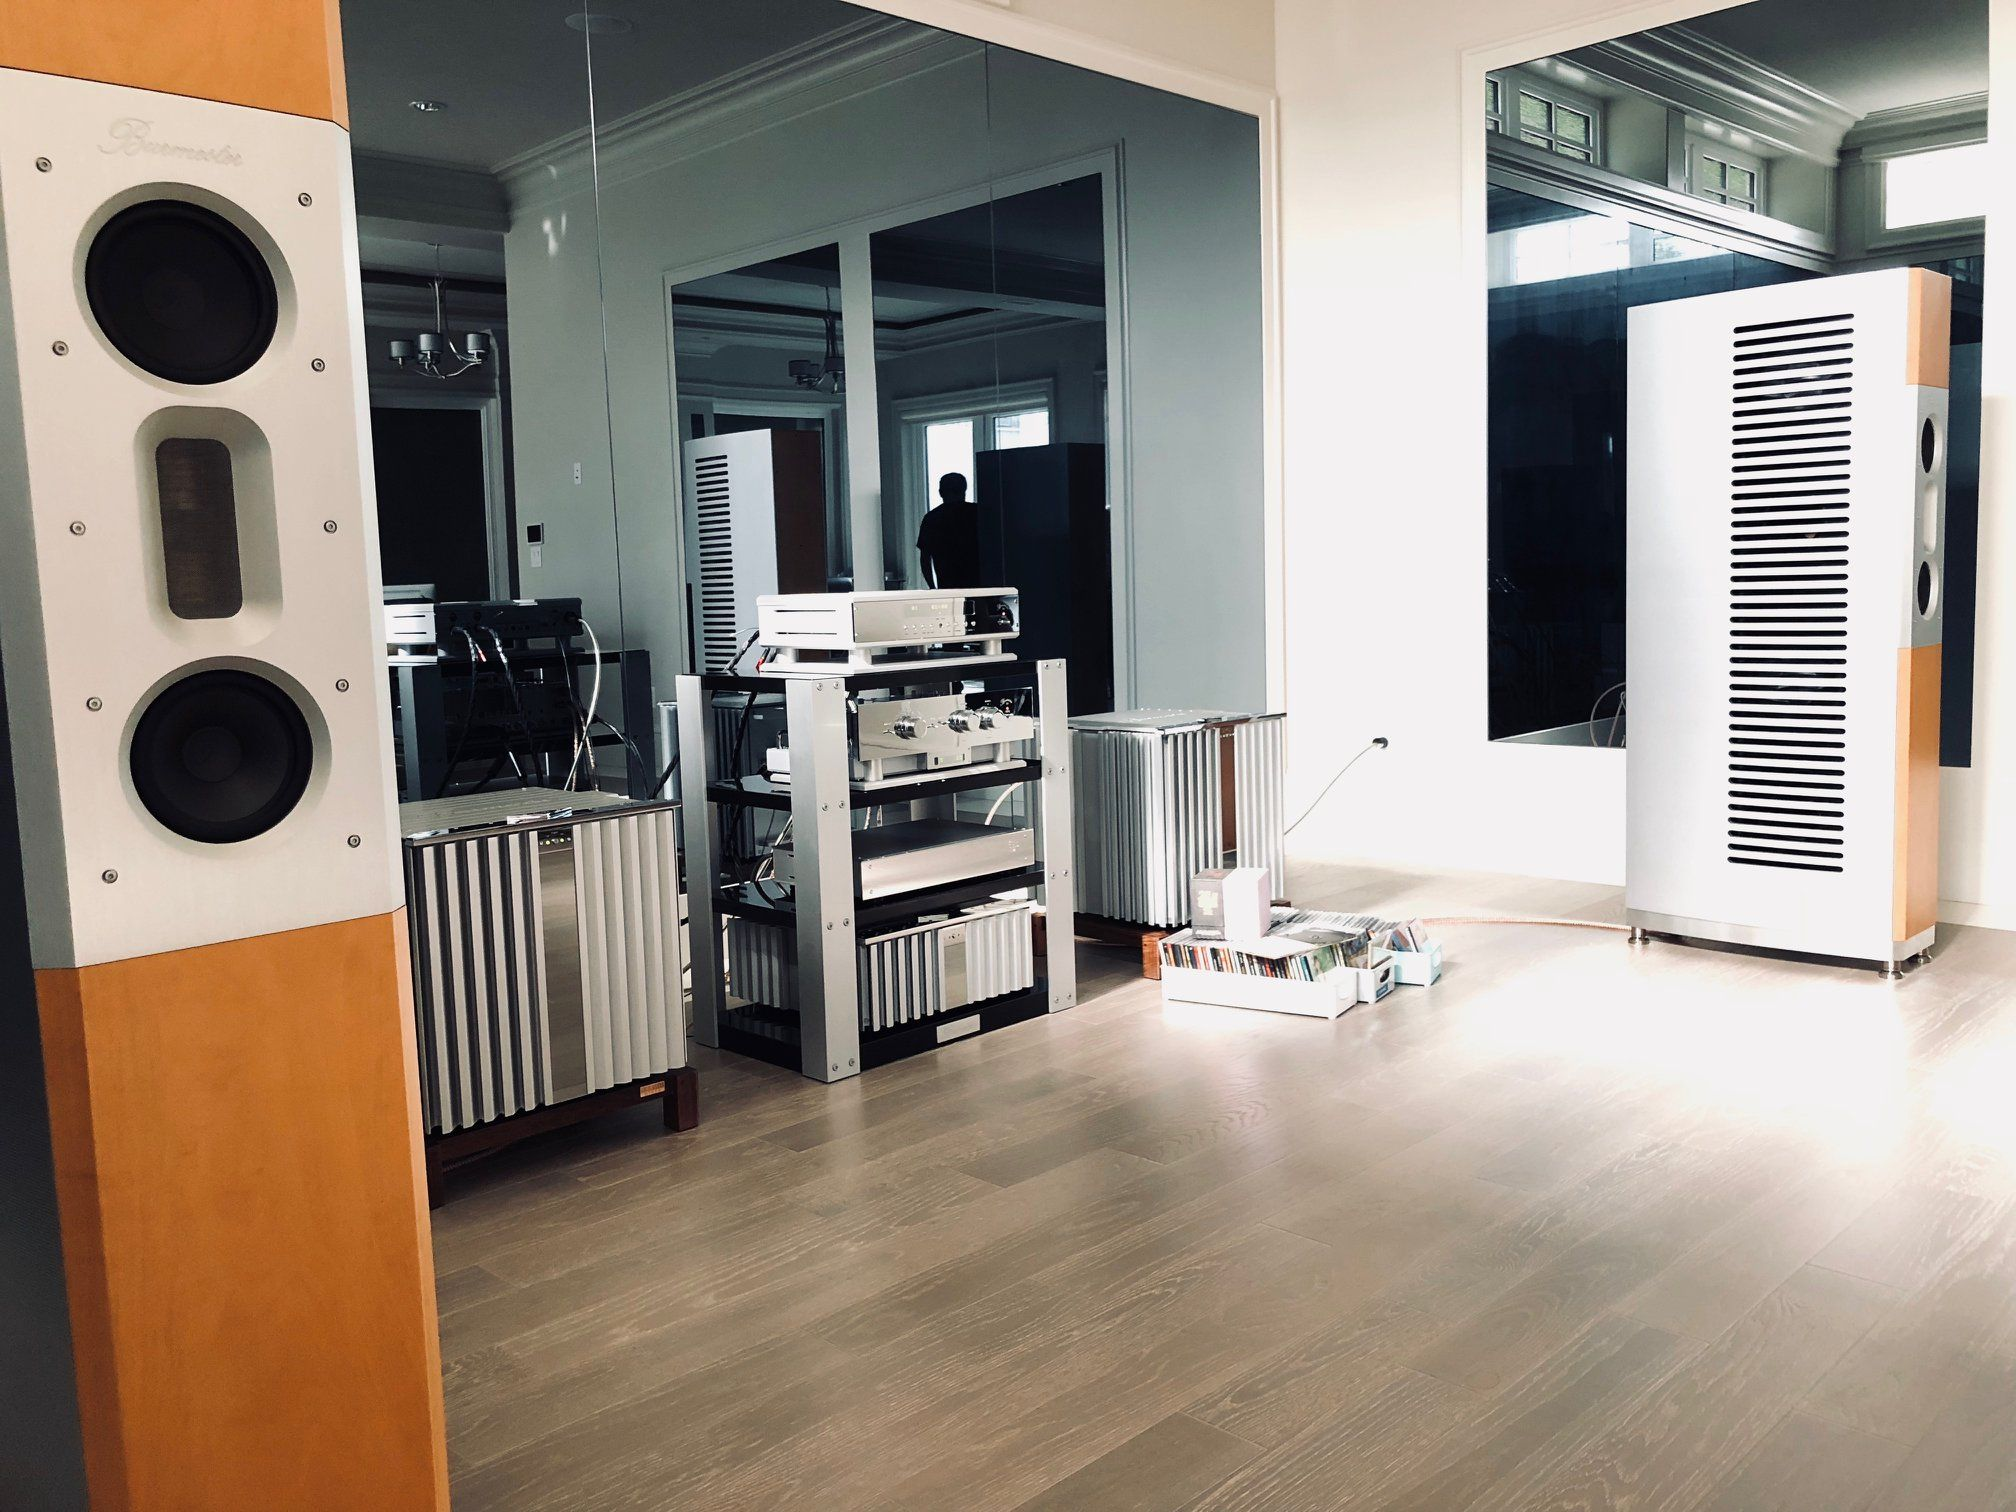 Burmester Reference Line Setup At A Customer S Home In The Usa Thanks To Our Dealer Element Acoustics From Richmond Virginia System Consists Of 069